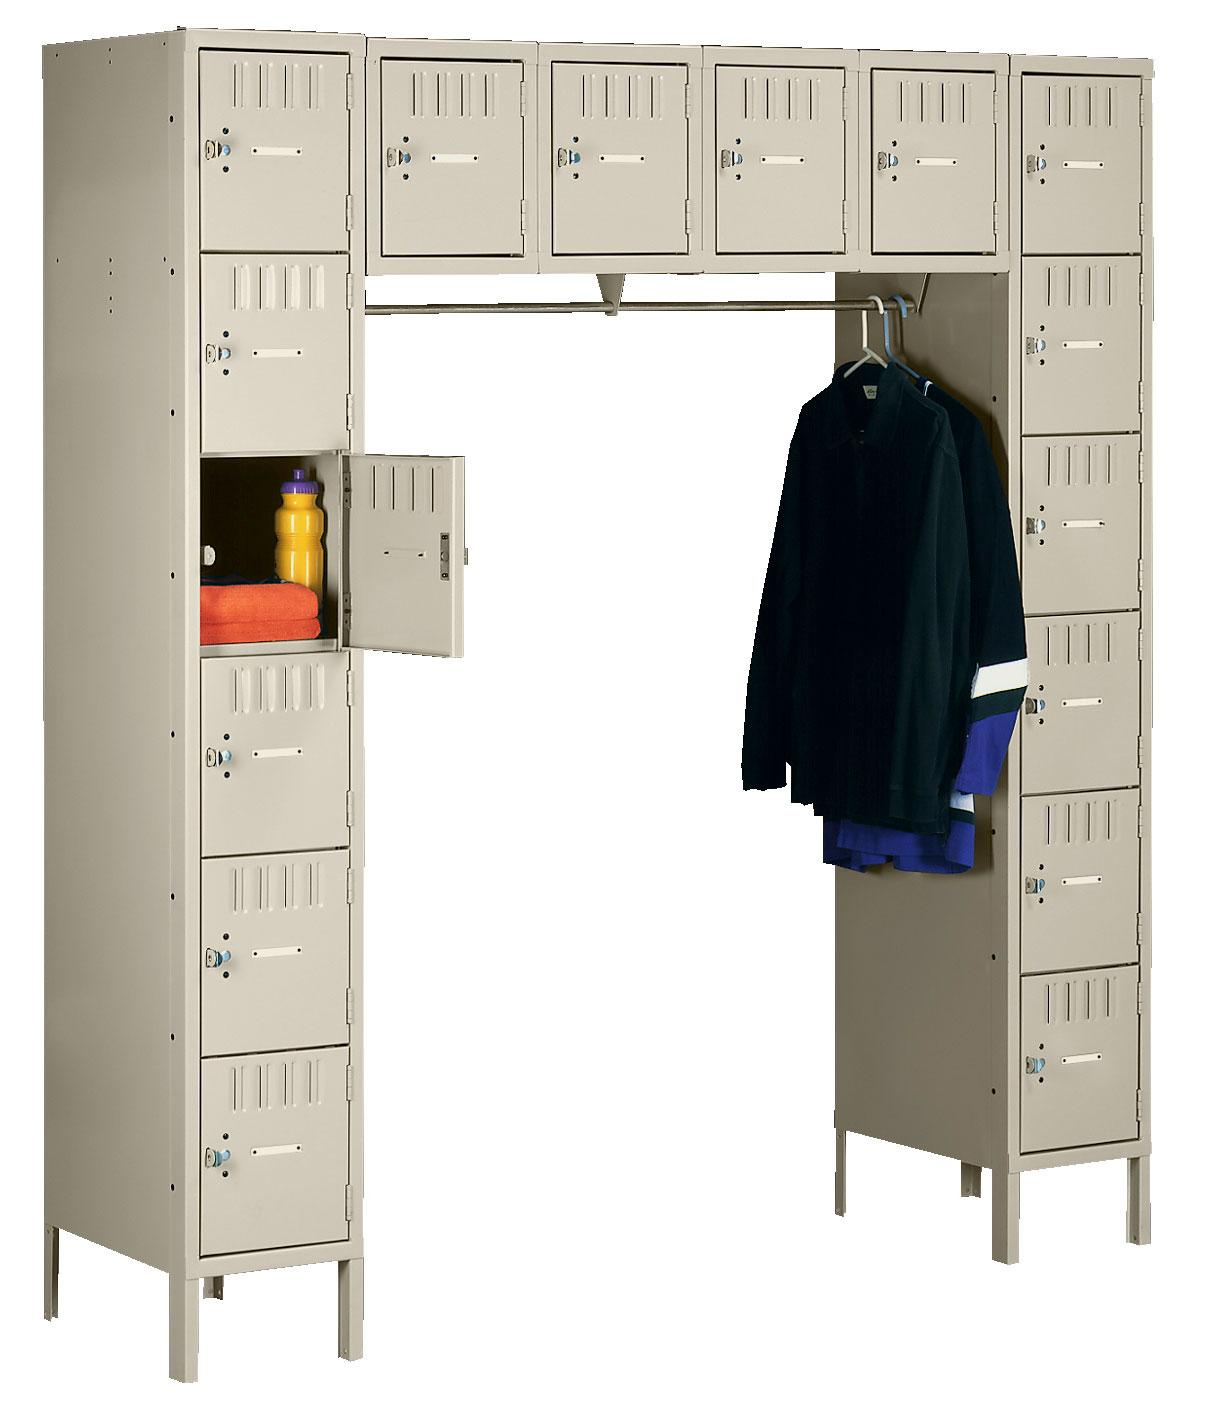 Tennsco 16 Person Locker - Model SRS-721878-1